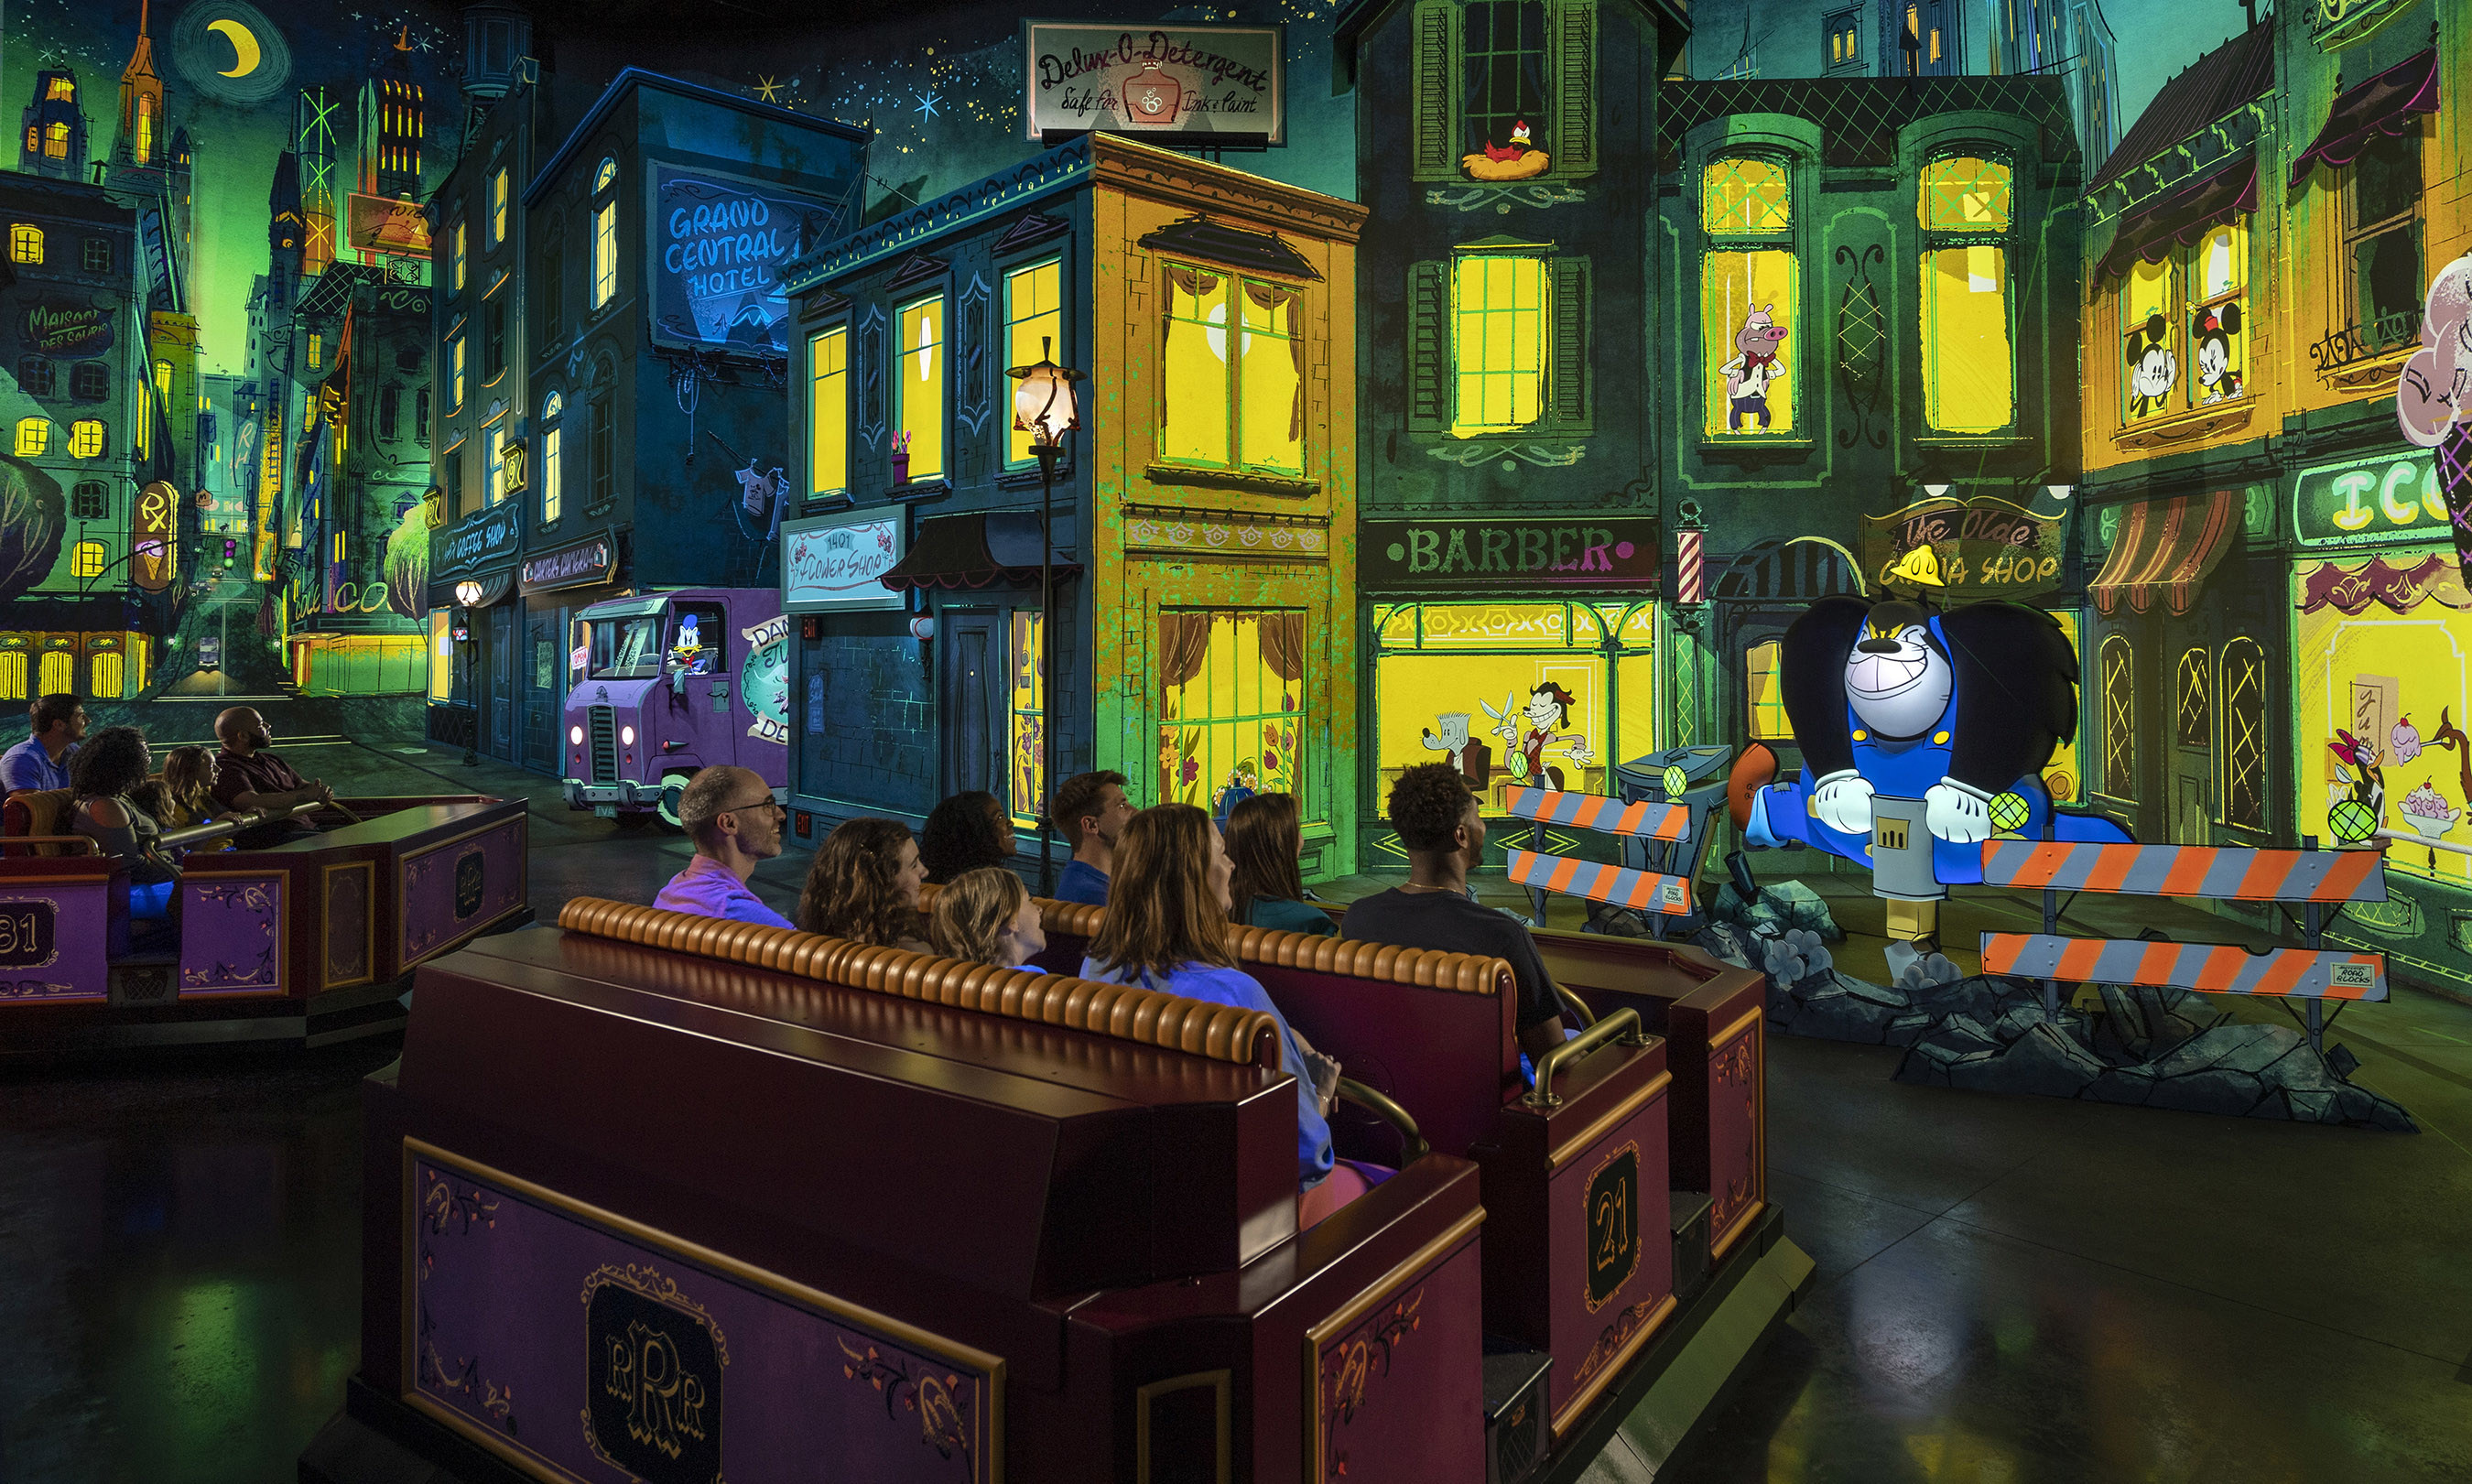 Panasonic Creates Immersive Cartoon World with First Ever Disney Ride-Through Attraction Featuring Mickey Mouse and Friends